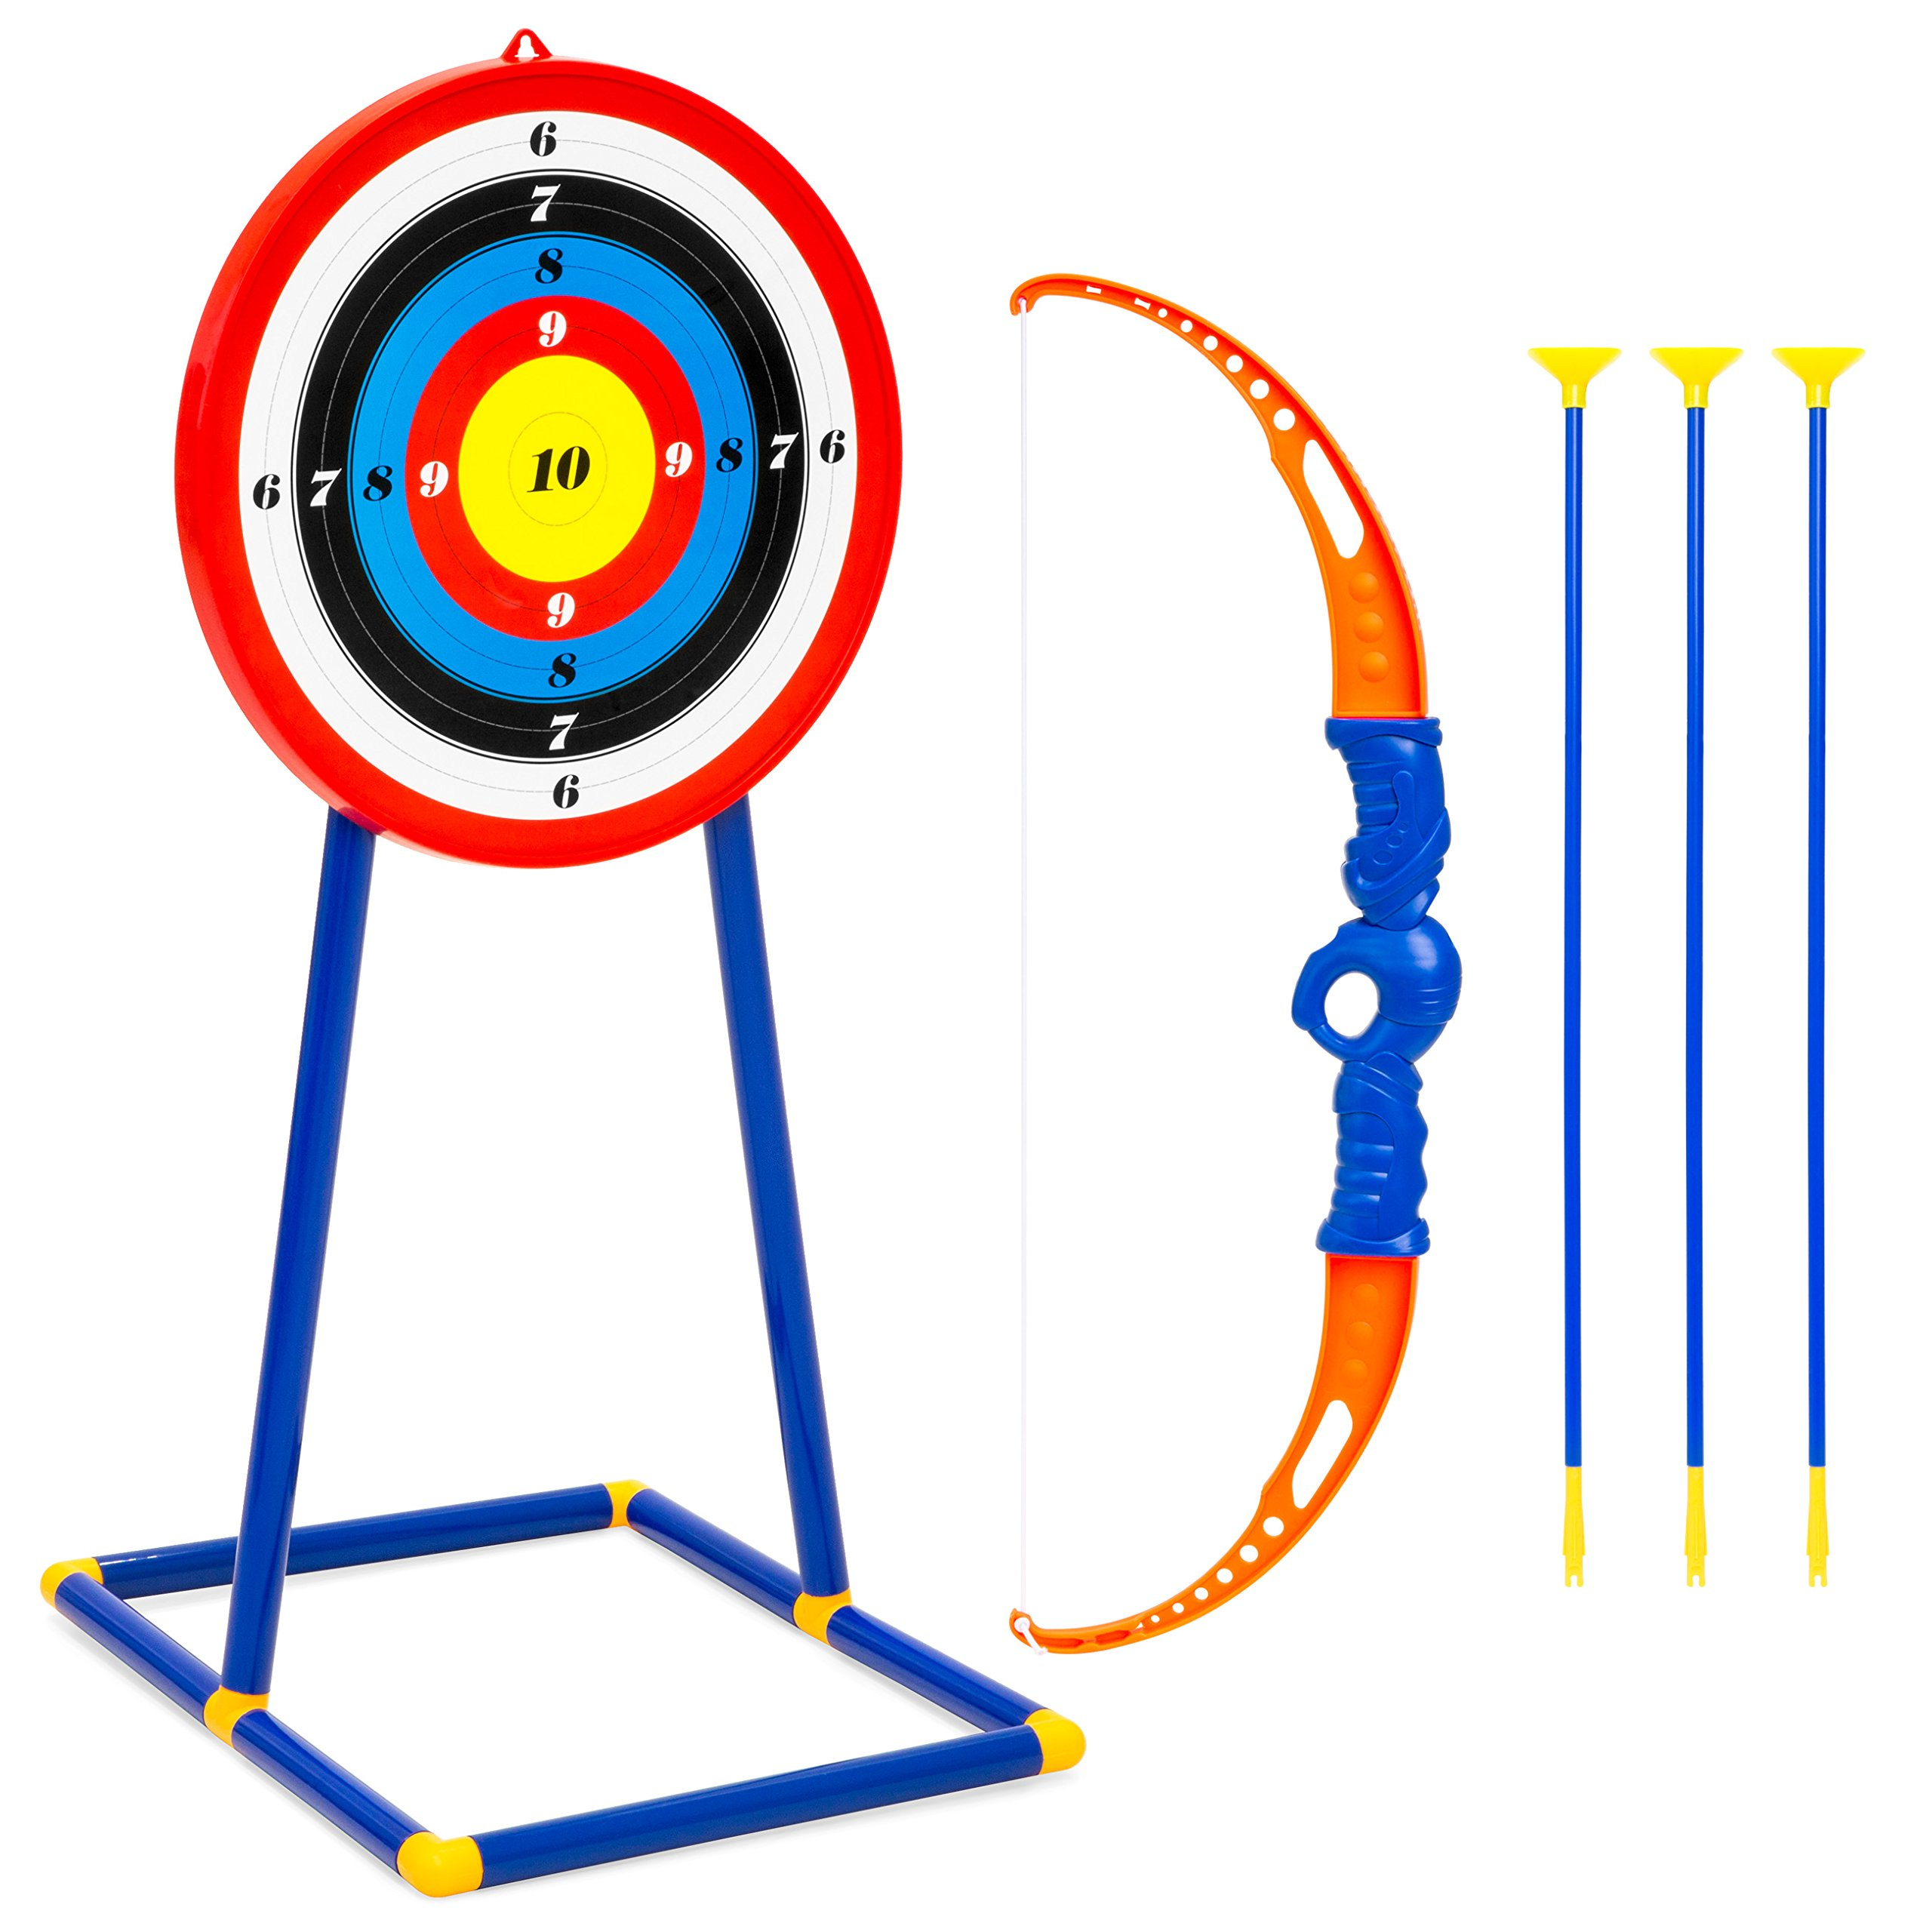 Best Choice Products Indoor/Outdoor Archery Play Set with 3 Suction-Cup Arrows, Target and Stand by Best Choice Products